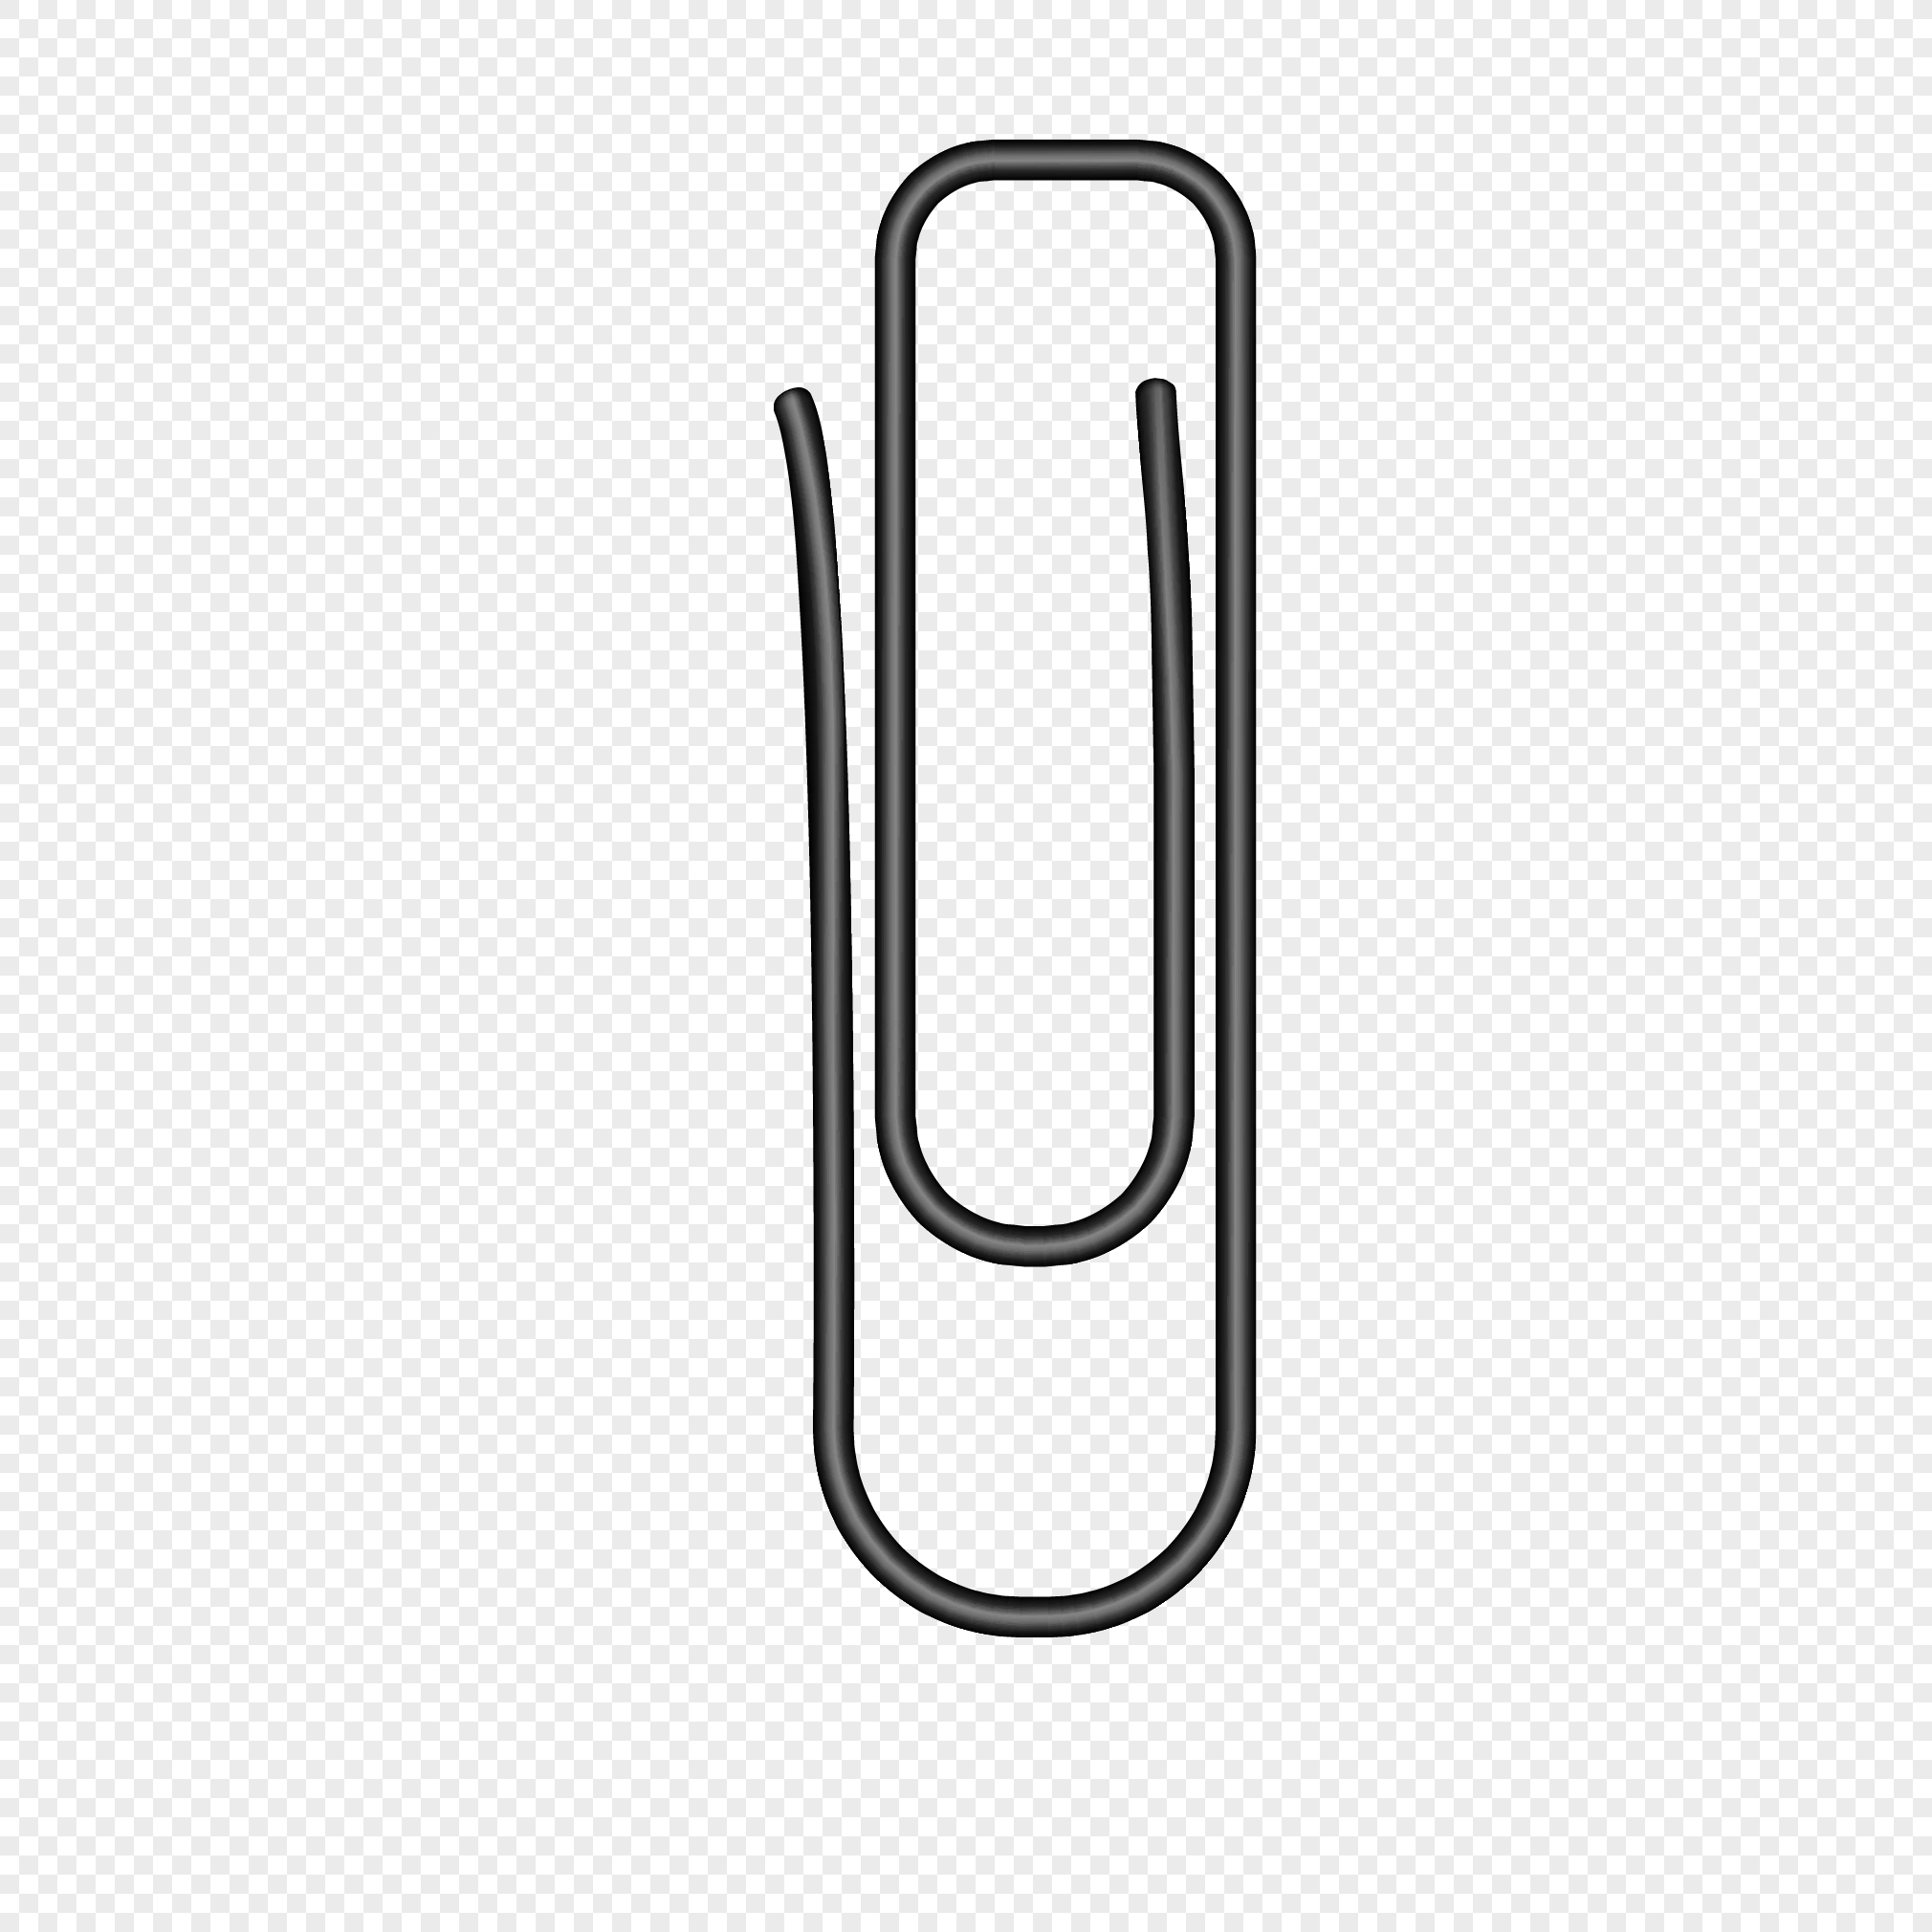 paper clip to learn stationery vector graphics elements png